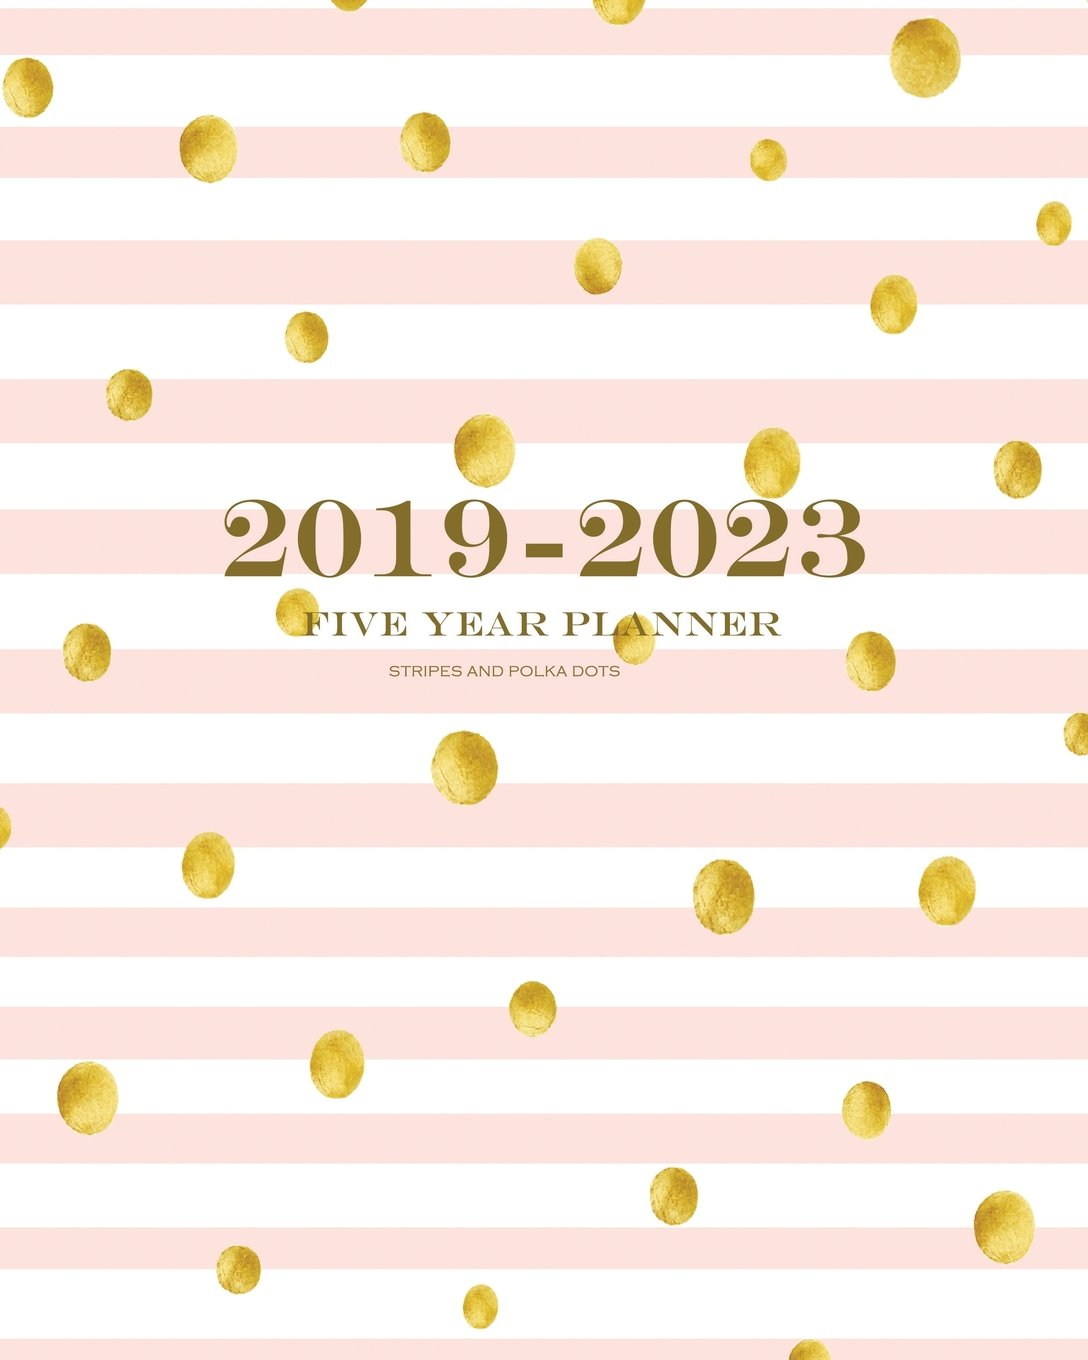 2019-2023 Stripes and Polka Dots Five Year Planner: 60 Months Planner and Calendar,Monthly Calendar Planner, Agenda Planner and Schedule Organizer, ... years (5 year calendar/5 year diary/8 x 10) ebook